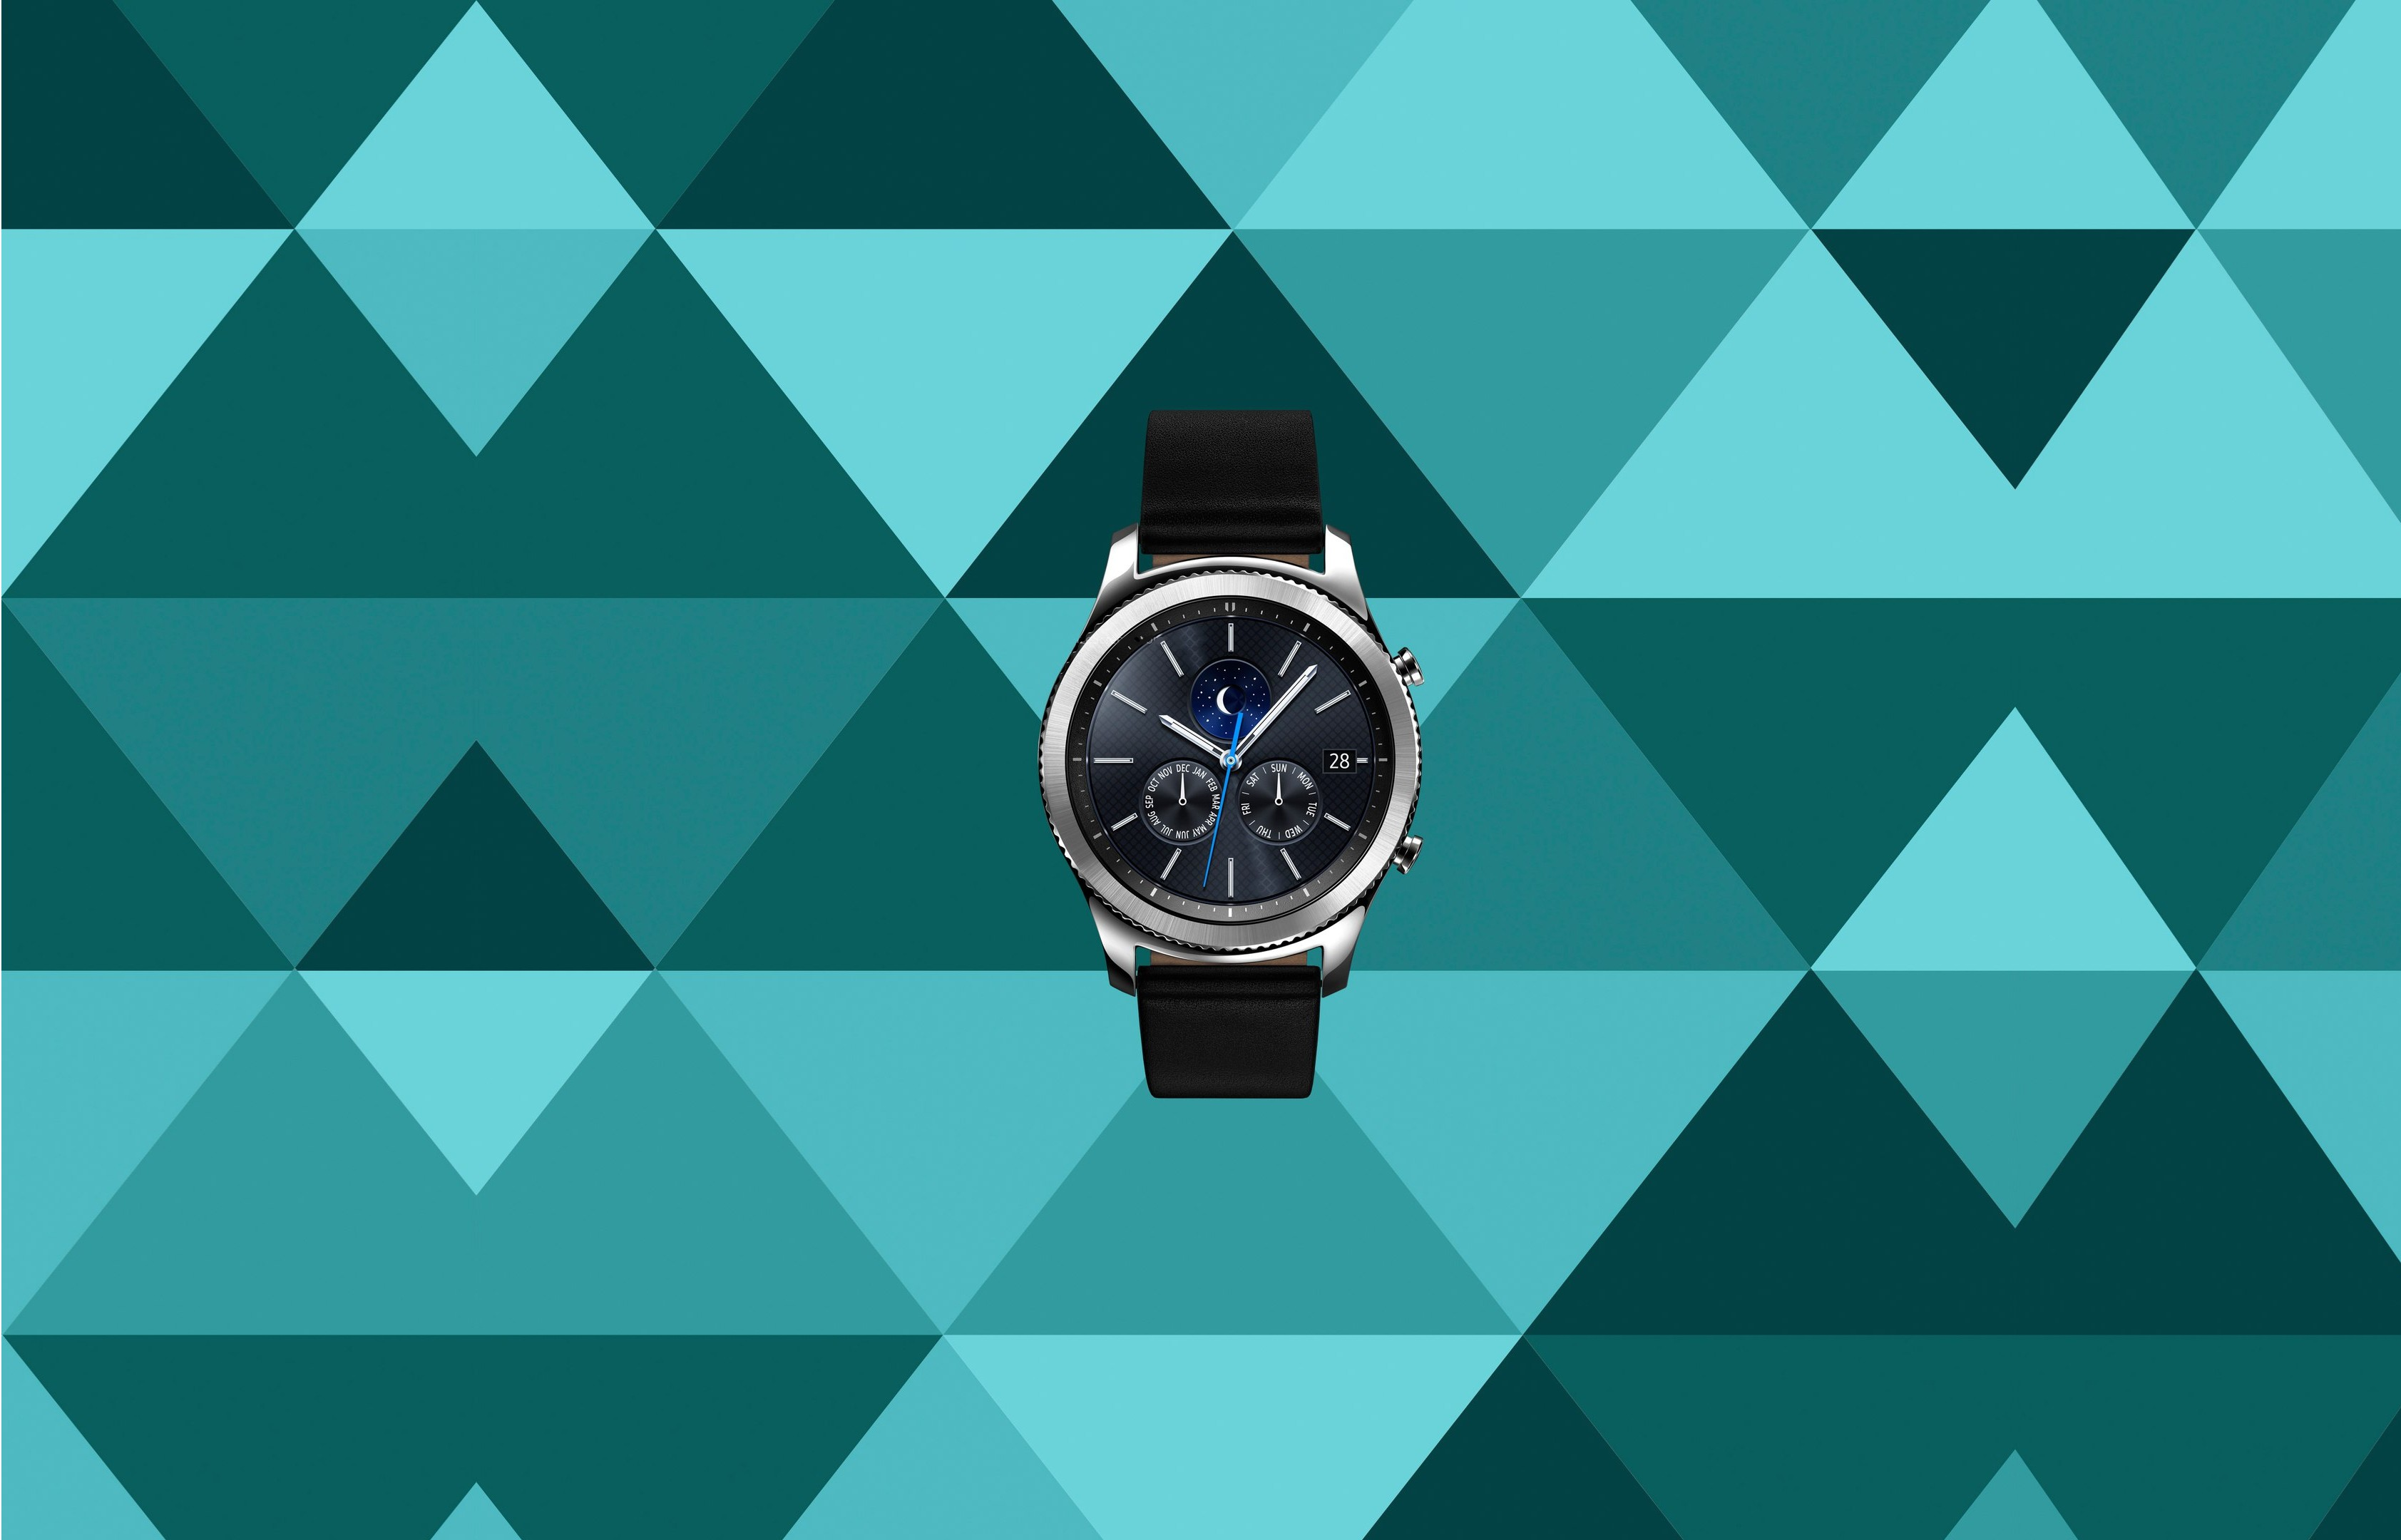 Wallpaper samsung gear s 3 smart watch review ifa 2016 for Terengganu home wallpaper 2016